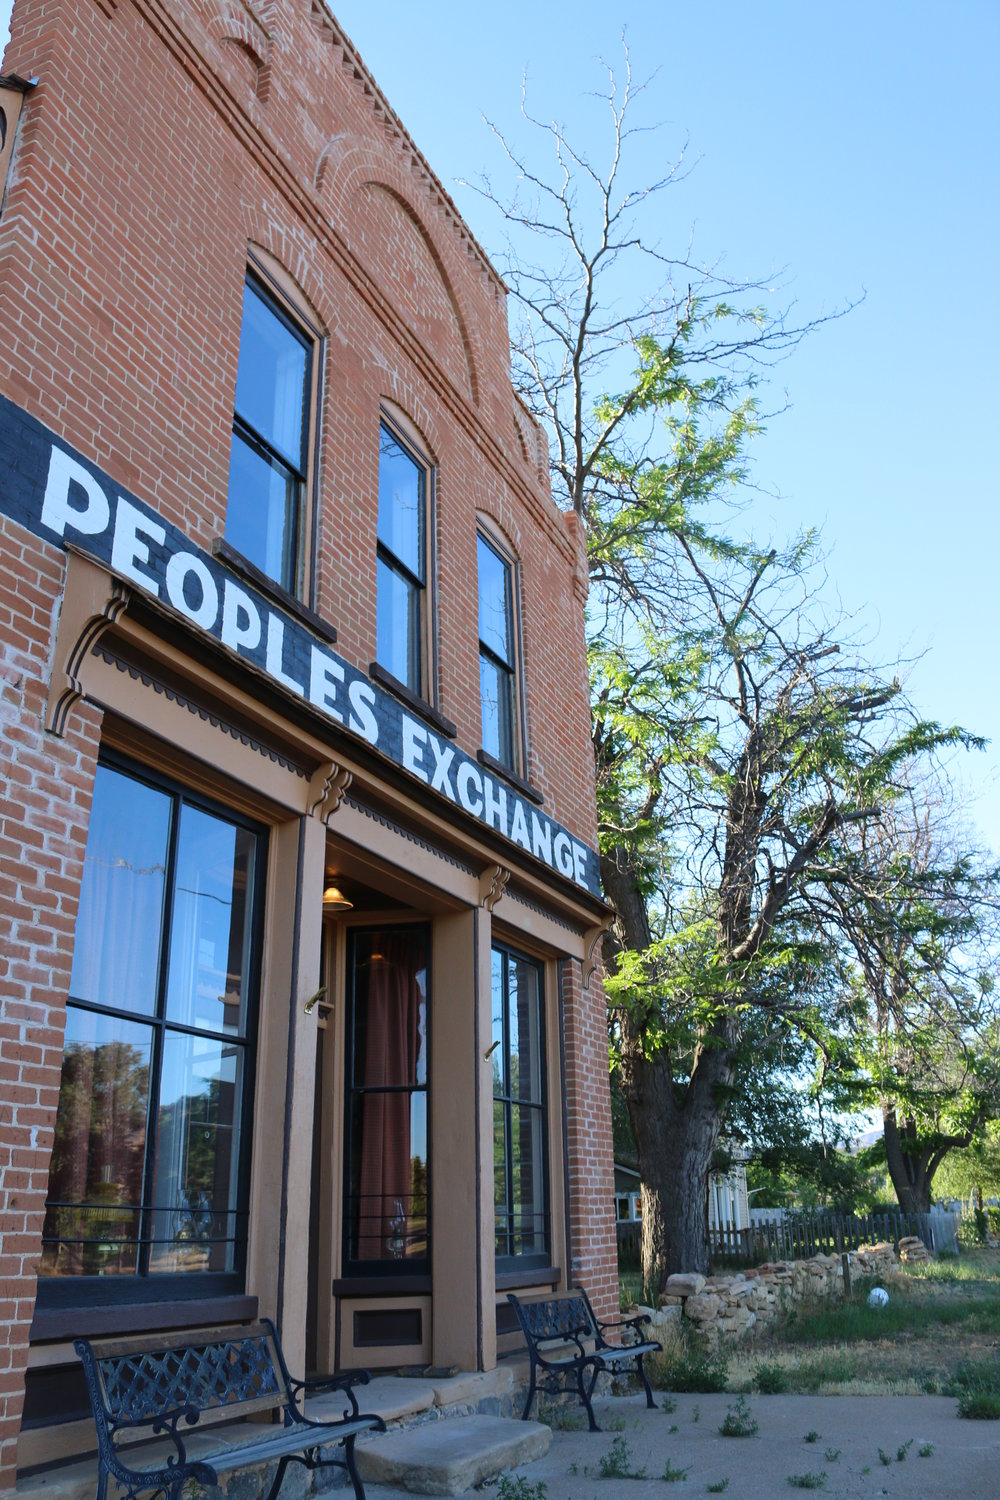 Historic People's Exchange Building - Escalante, Utah. Photo provided by Rural Planning Group.